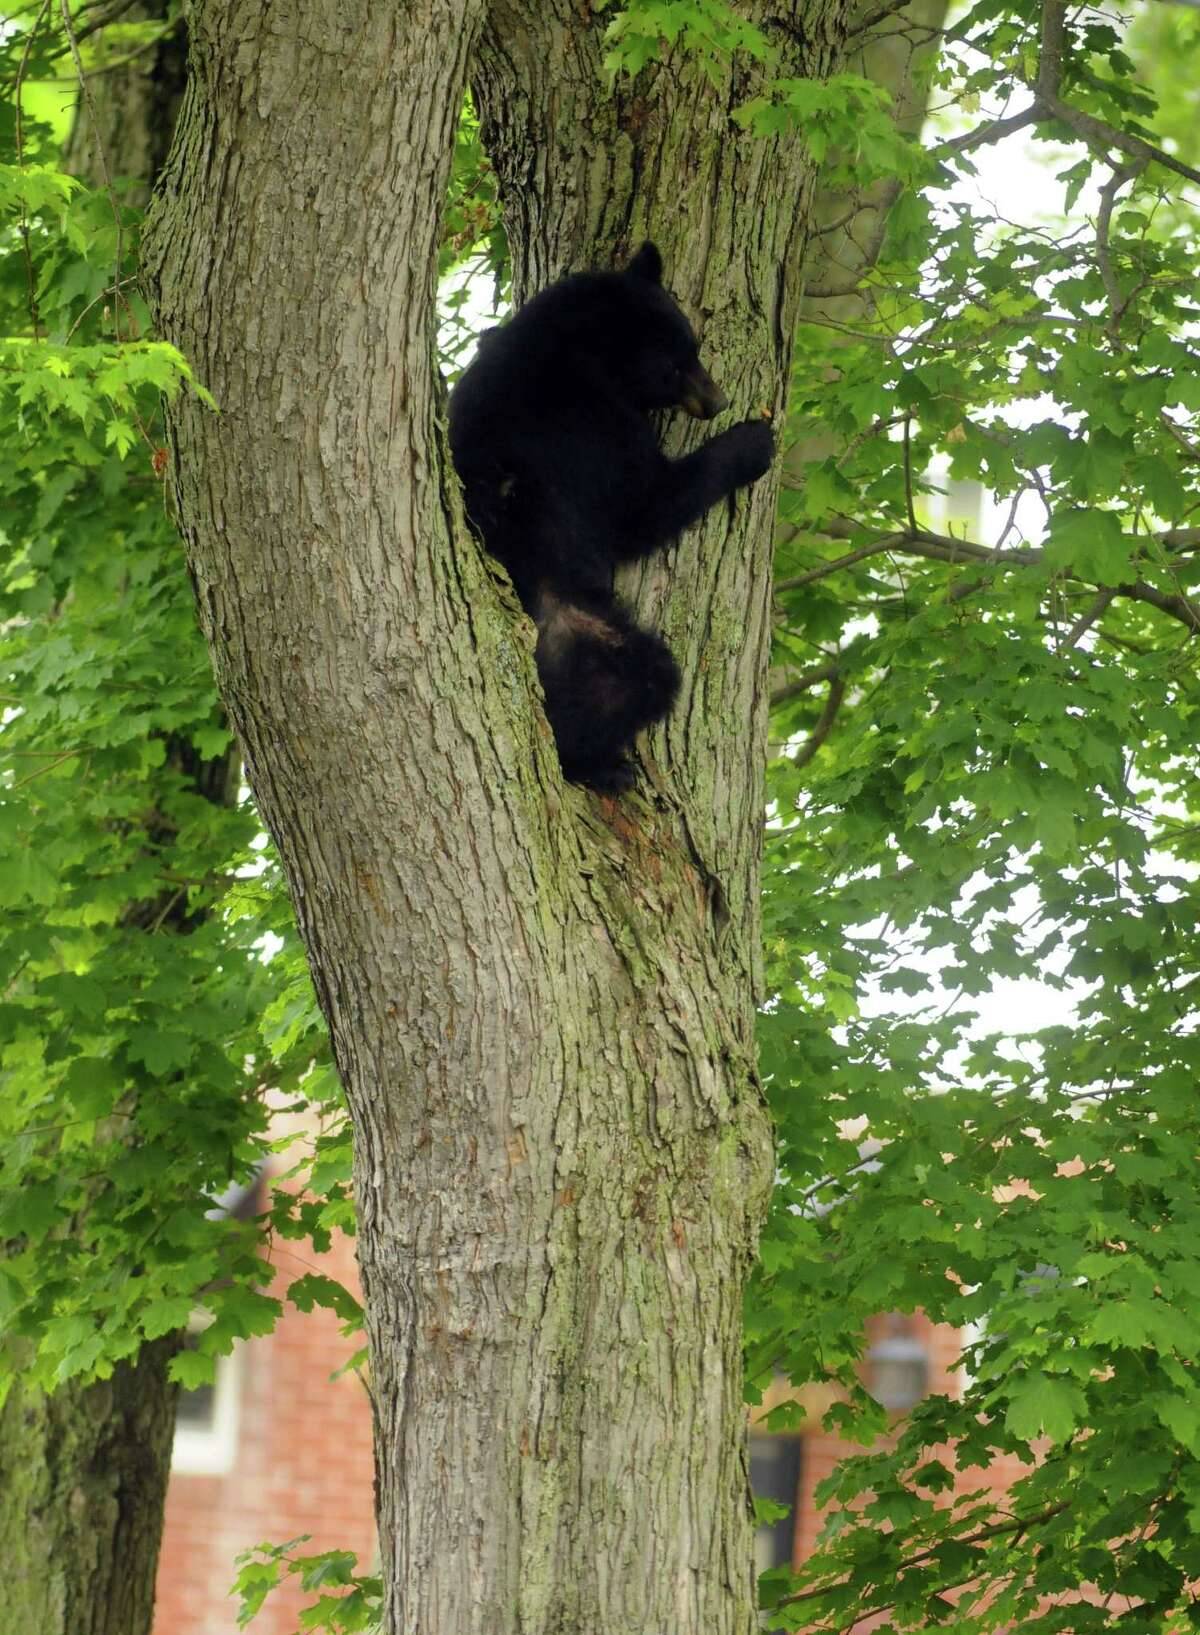 A bear sits perched in a tree between napping high in a tree of a yard off Meadow Drive in North Greenbush N.Y. Tuesday May 15, 2012. (Michael P. Farrell/Times Union)